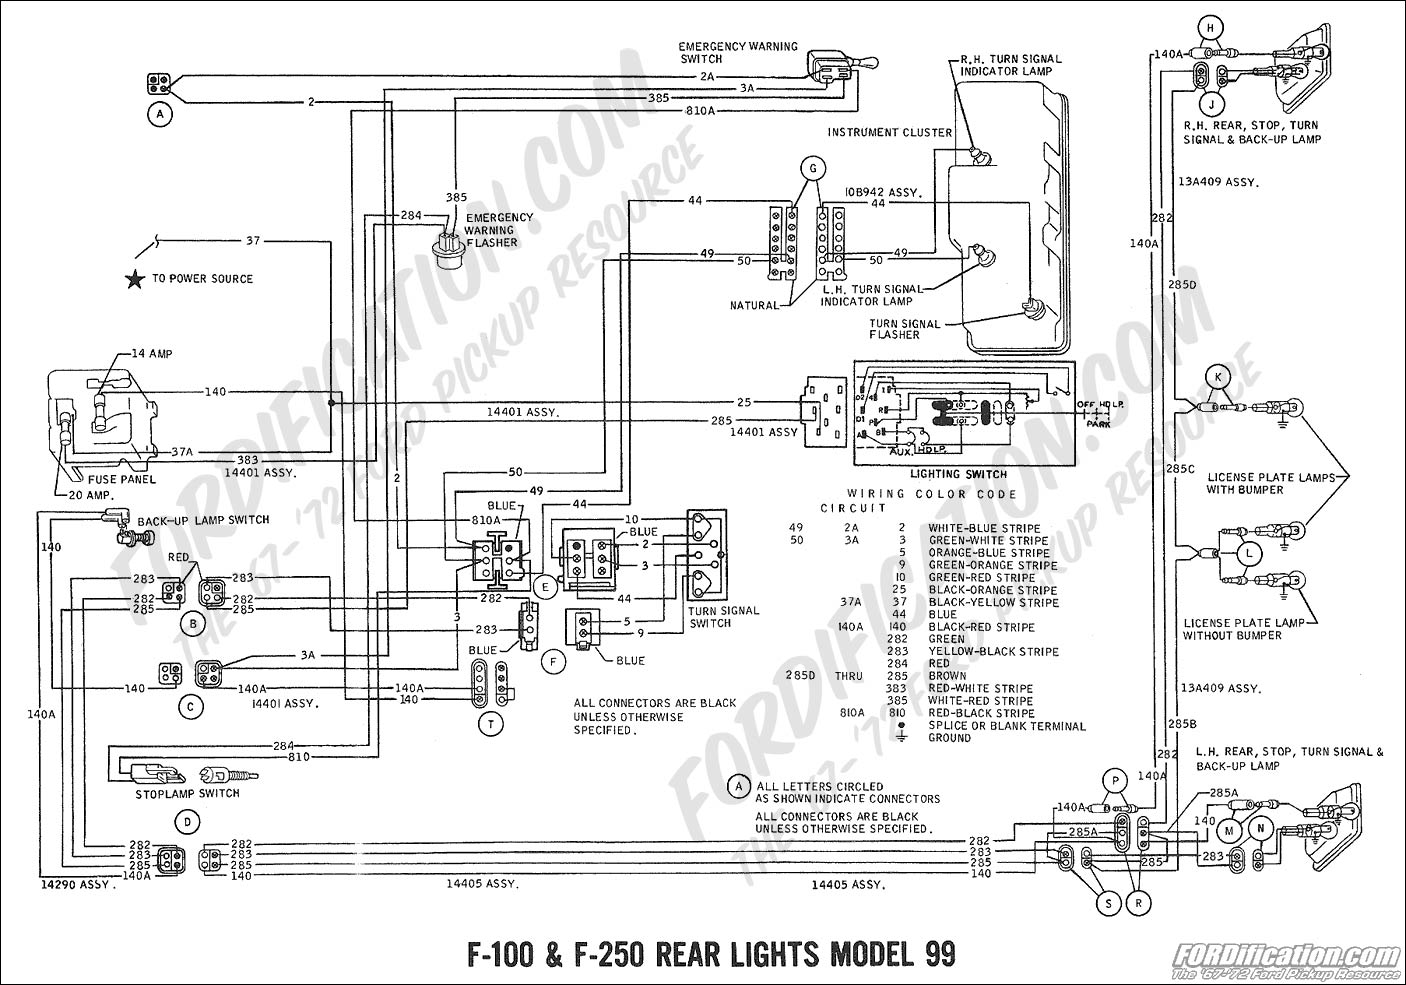 1996 honda civic turn signal wiring diagram with 99 Civic Wiring Diagram Courtesy Lights L21935 on 99 Honda Civic Lx Engine Diagrams likewise Showthread further Honda Civic Fuse Diagram further Chevy Truck Cruise Control Wiring Diagram together with 97 Ford Alternator Wiring Diagram.